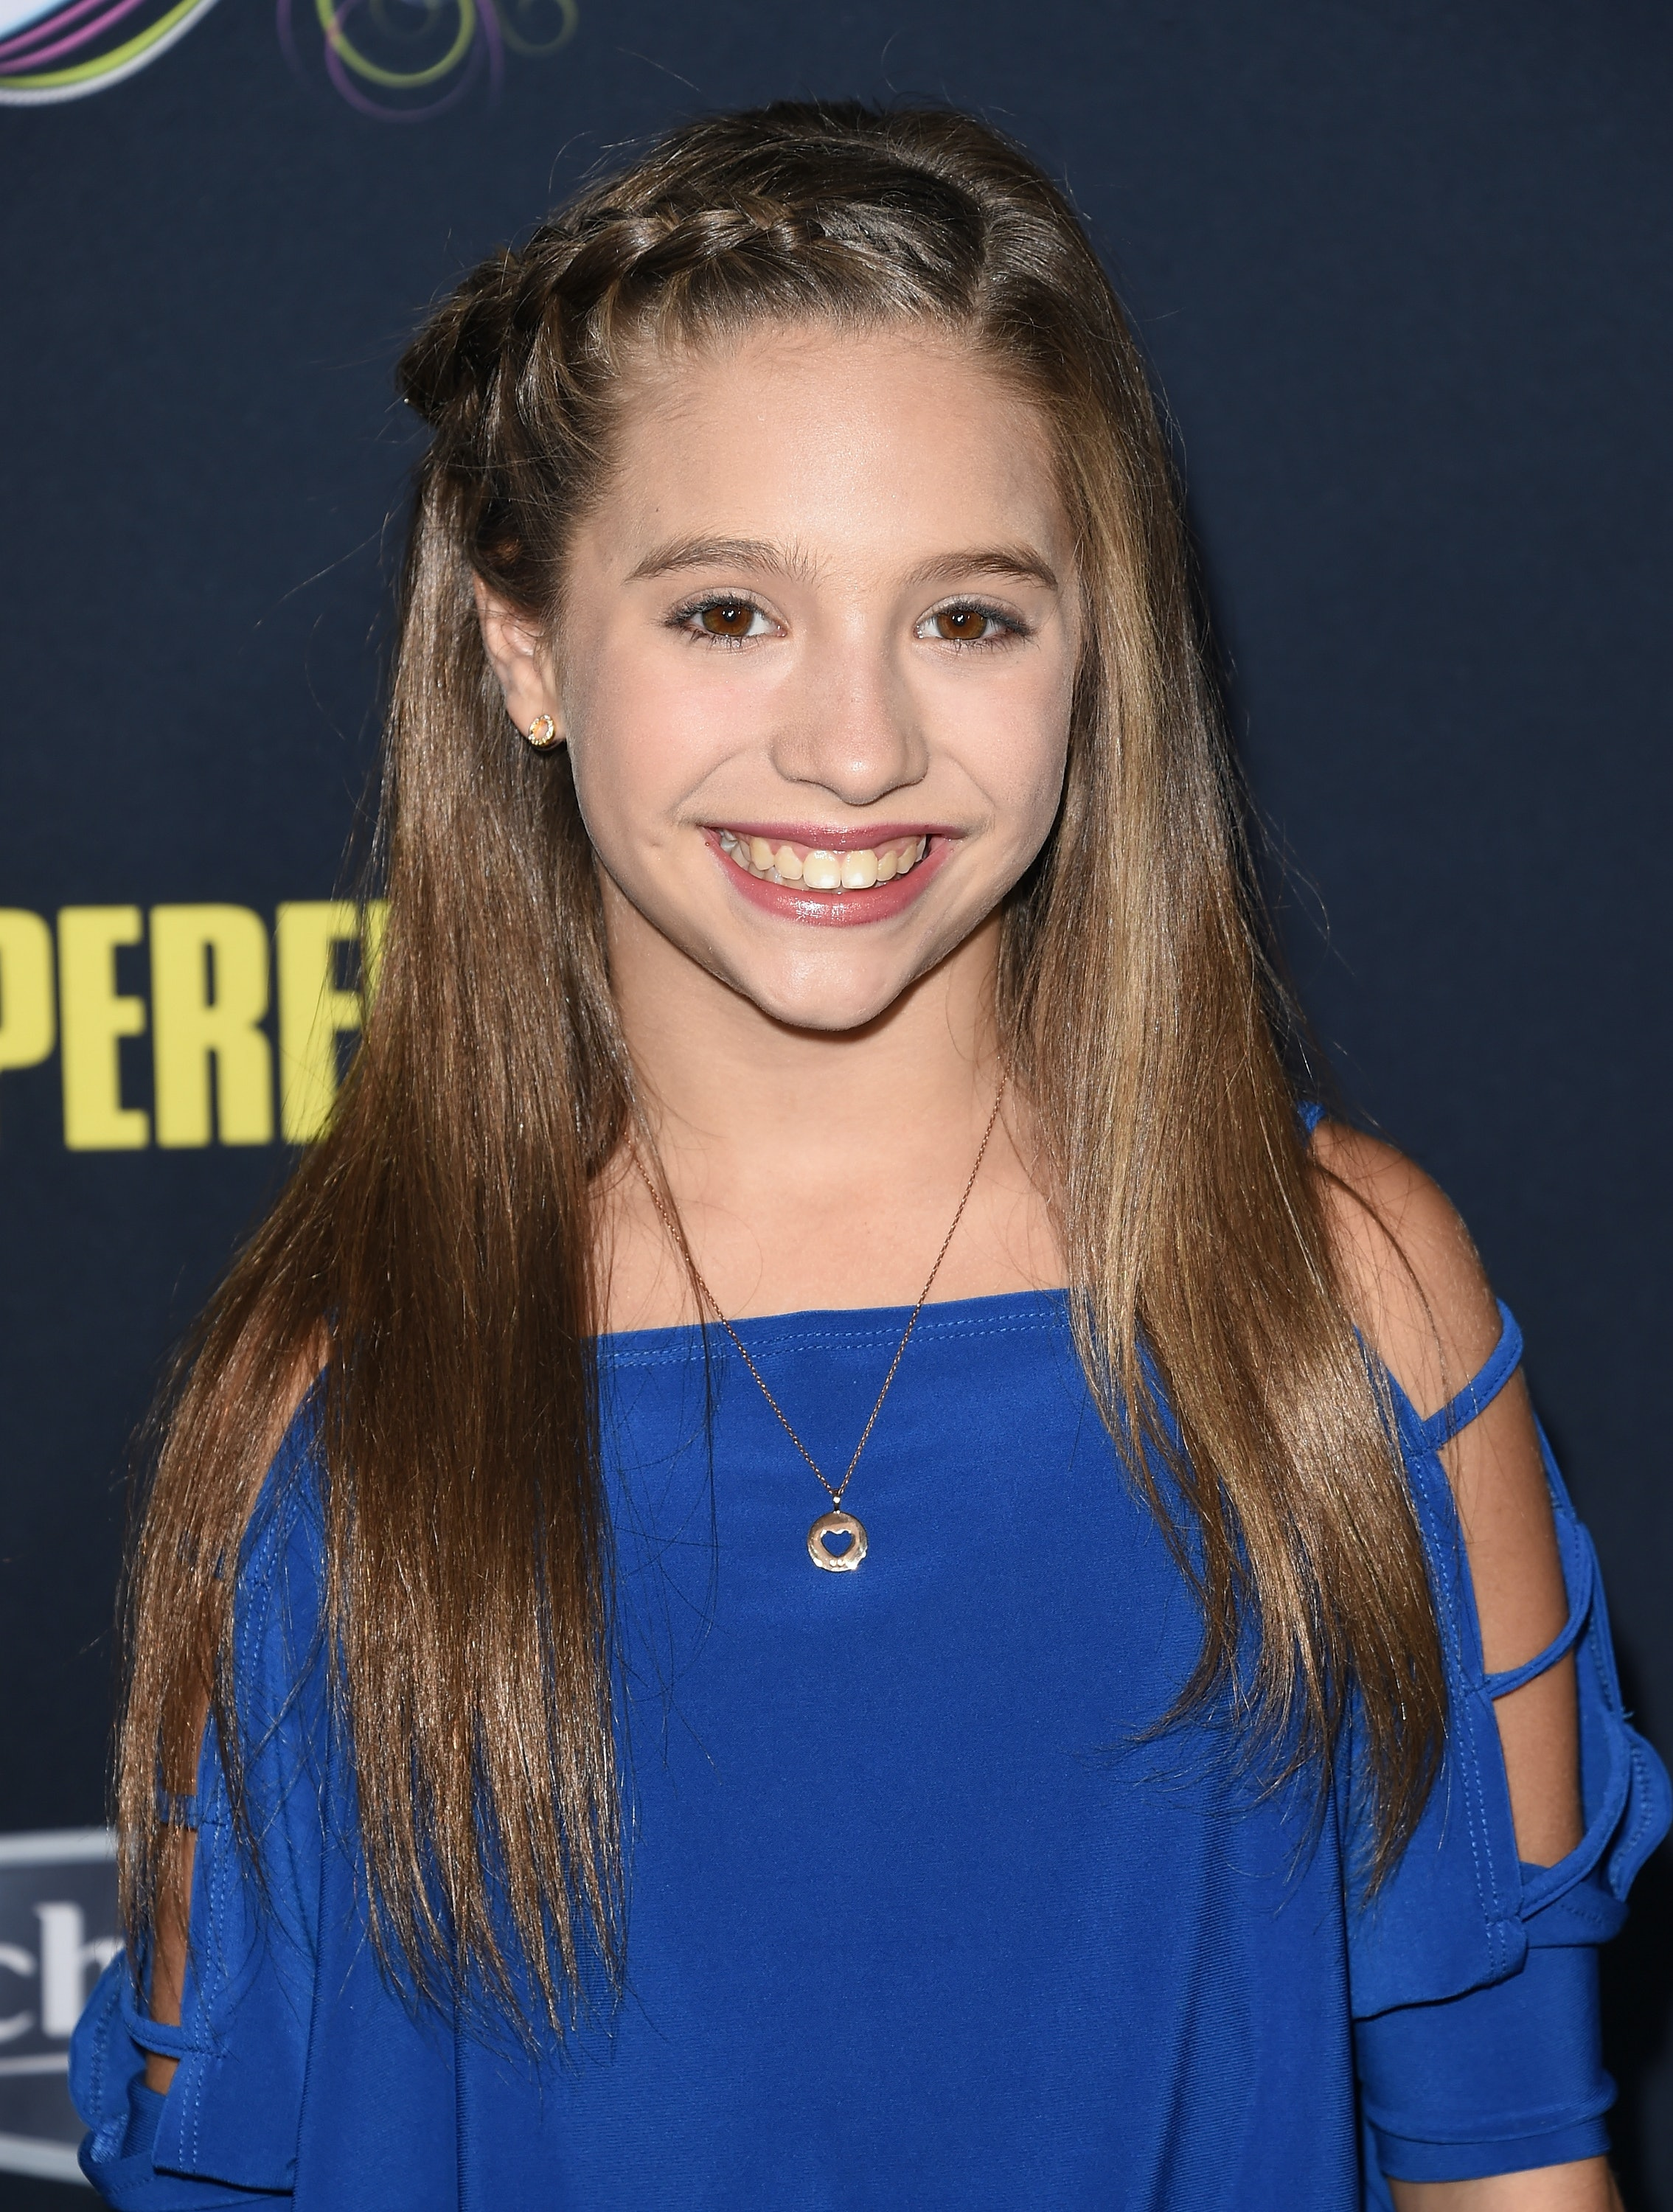 Mackenzie ziegler The 8 Best Mackenzie Ziegler Dances, Because Older Sister Maddie Isn't The  Only One Who Can Blow You Away — VIDEO